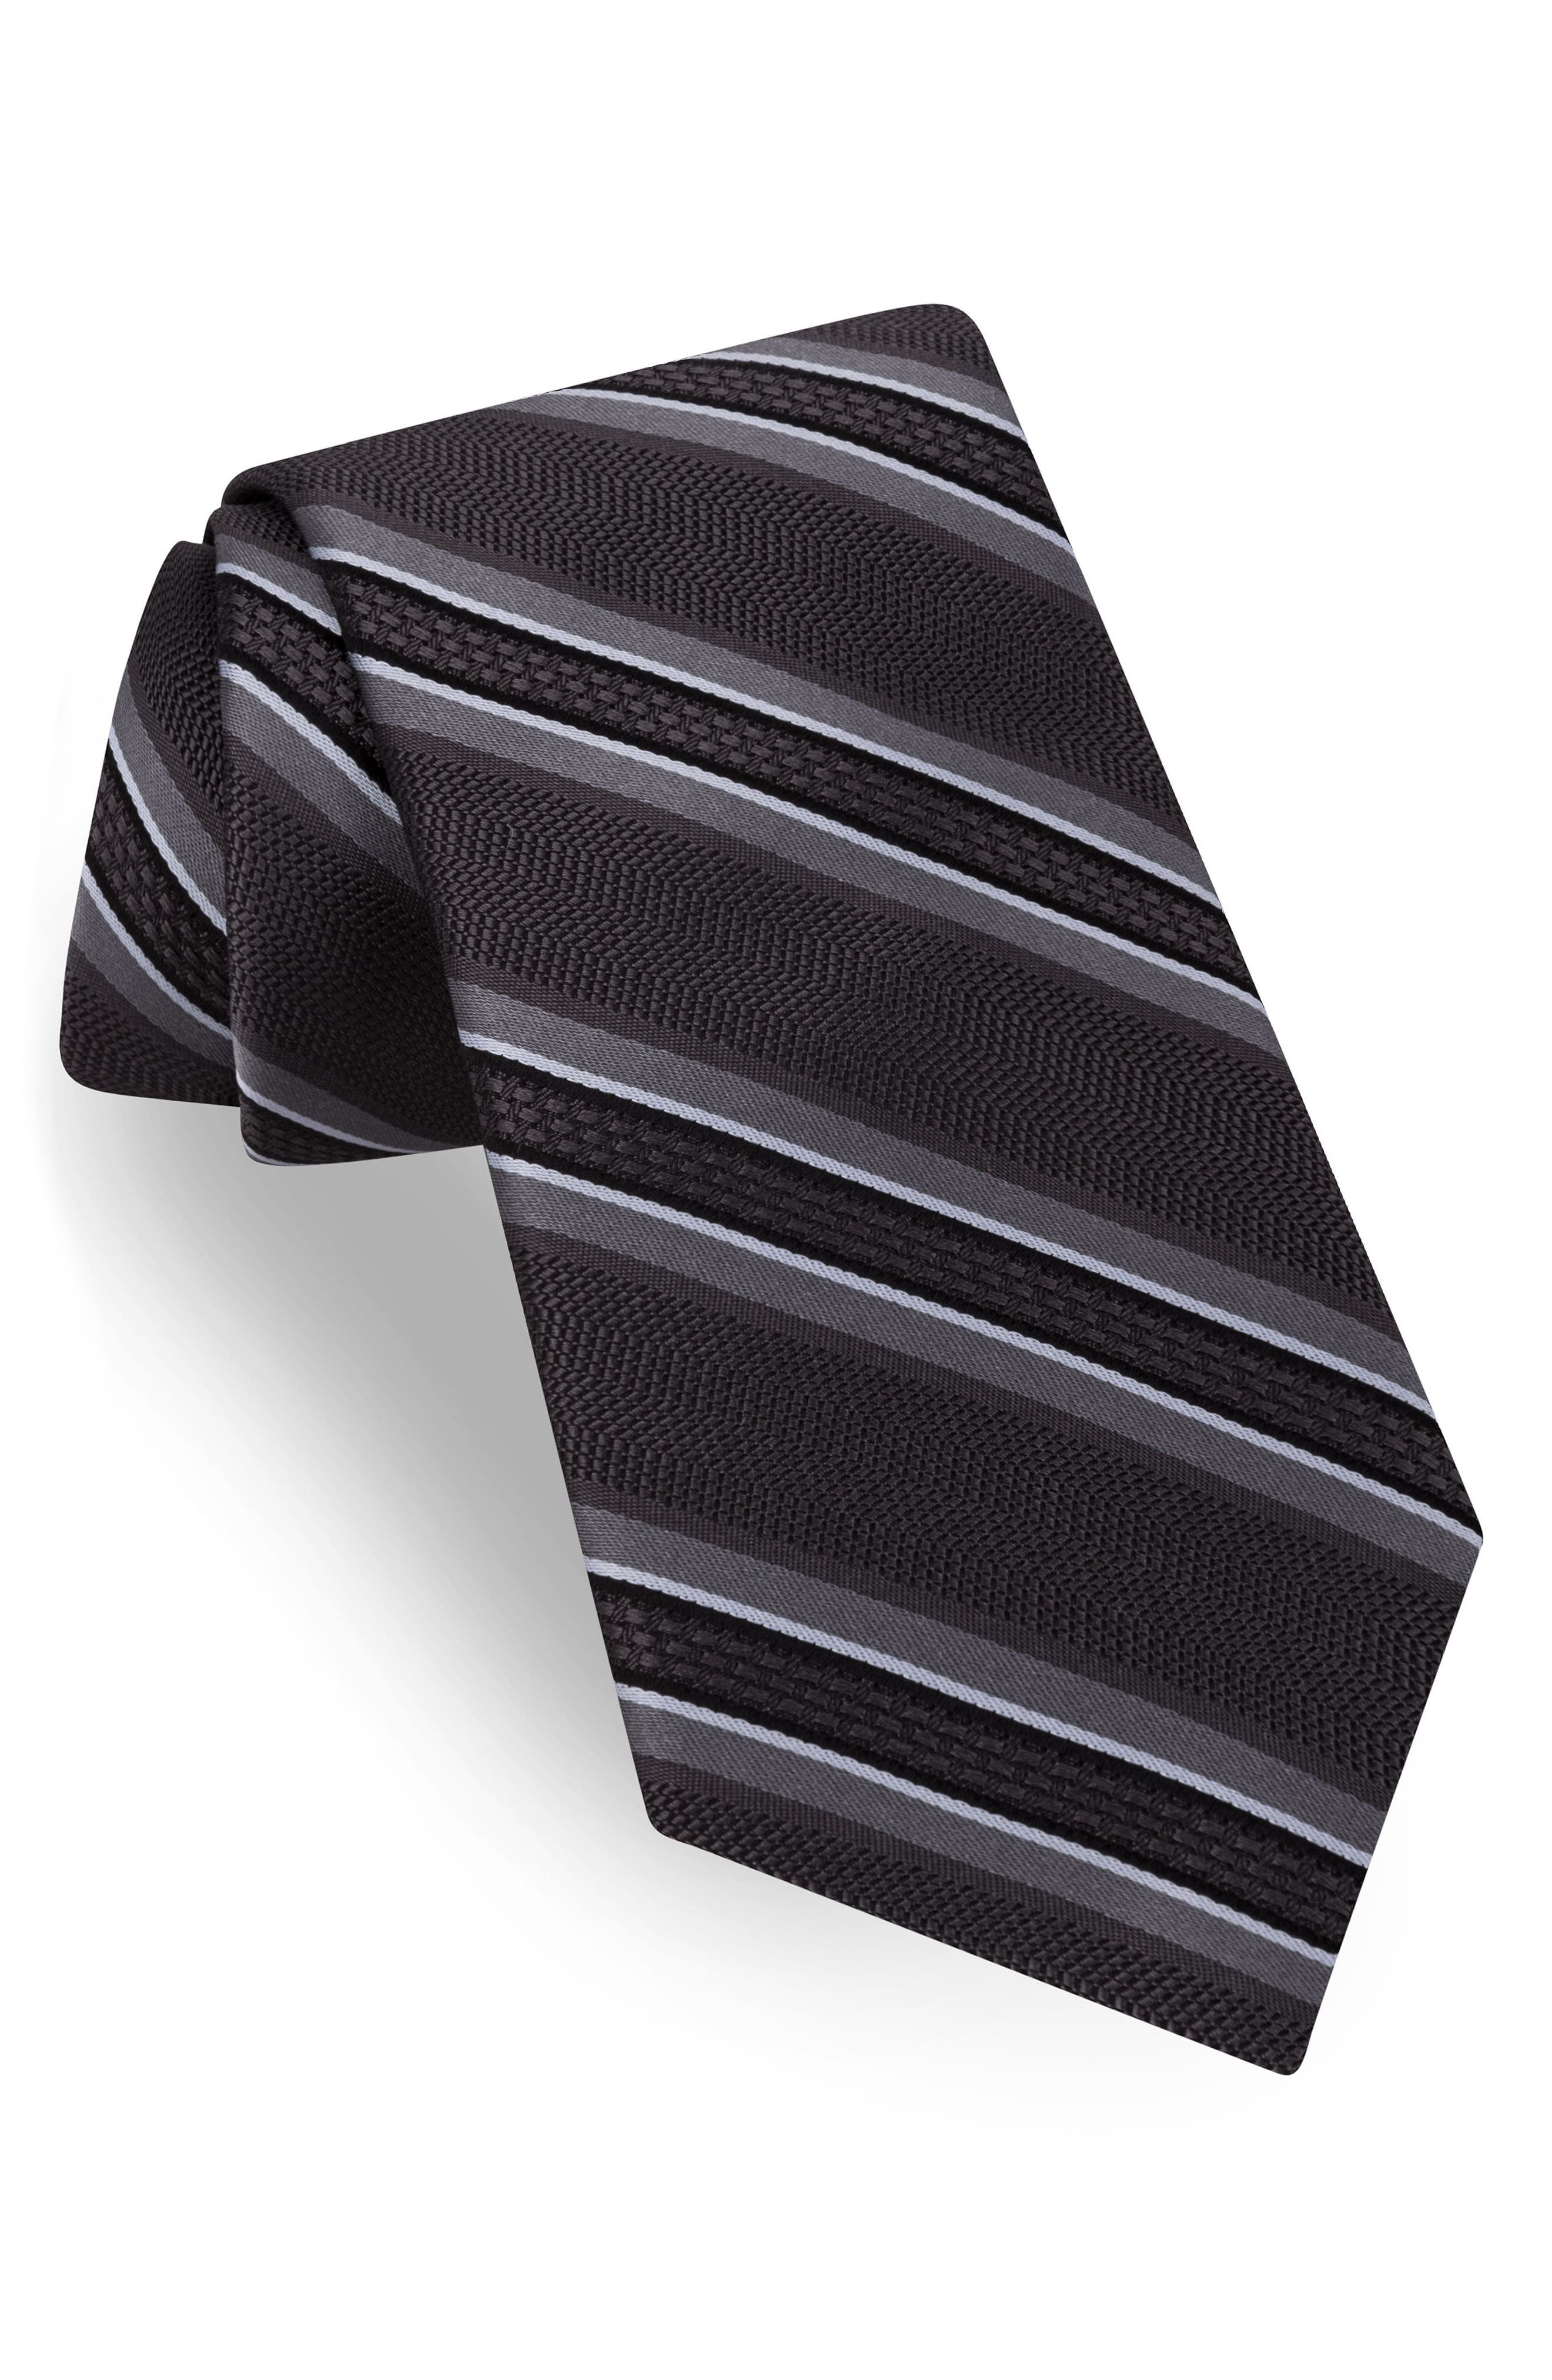 Jetset Stripe Silk Tie,                         Main,                         color, Charcoal